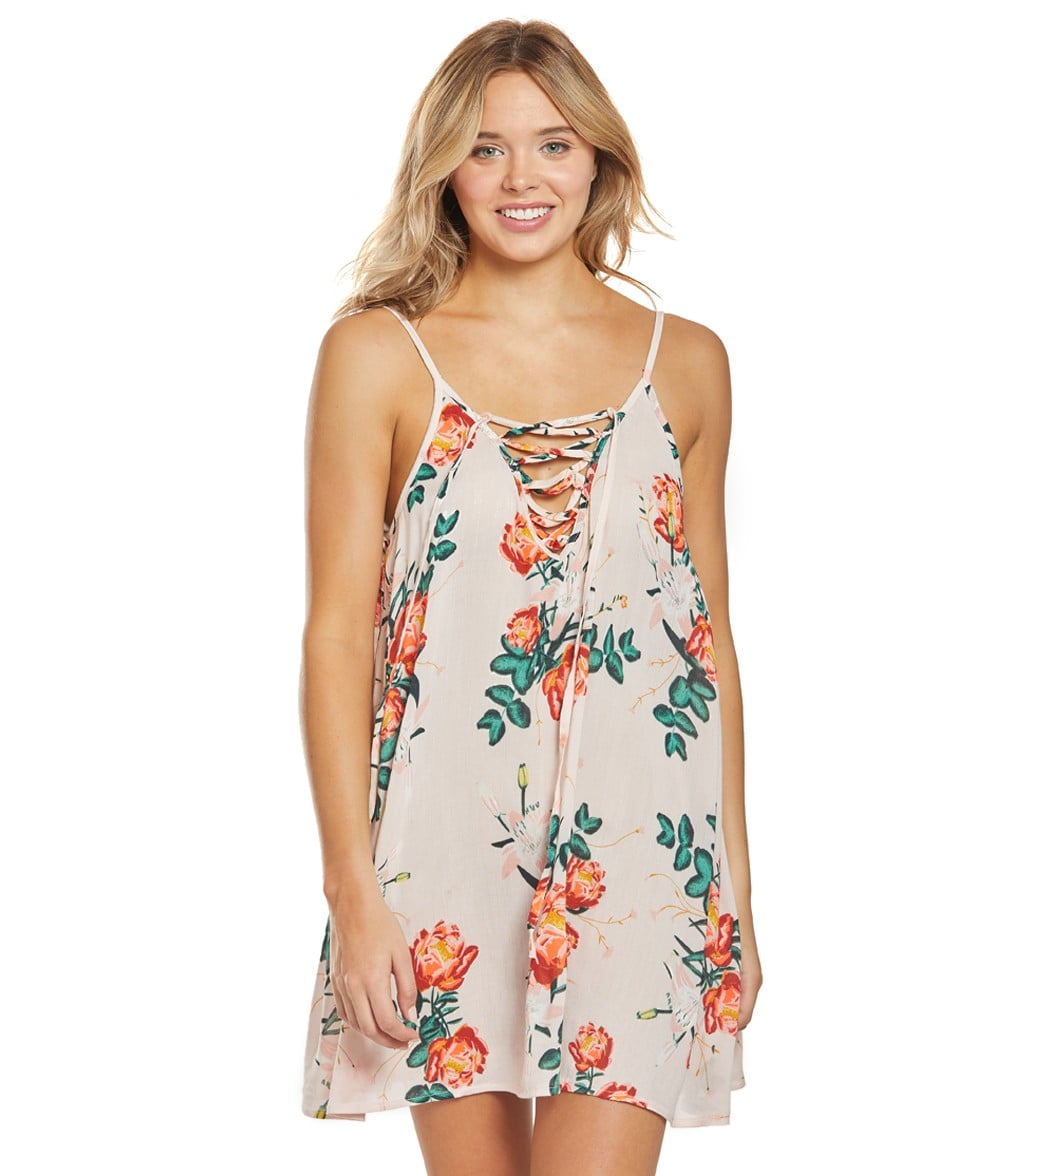 bd6990d253 Roxy Softly Love Cover Up Dress at SwimOutlet.com